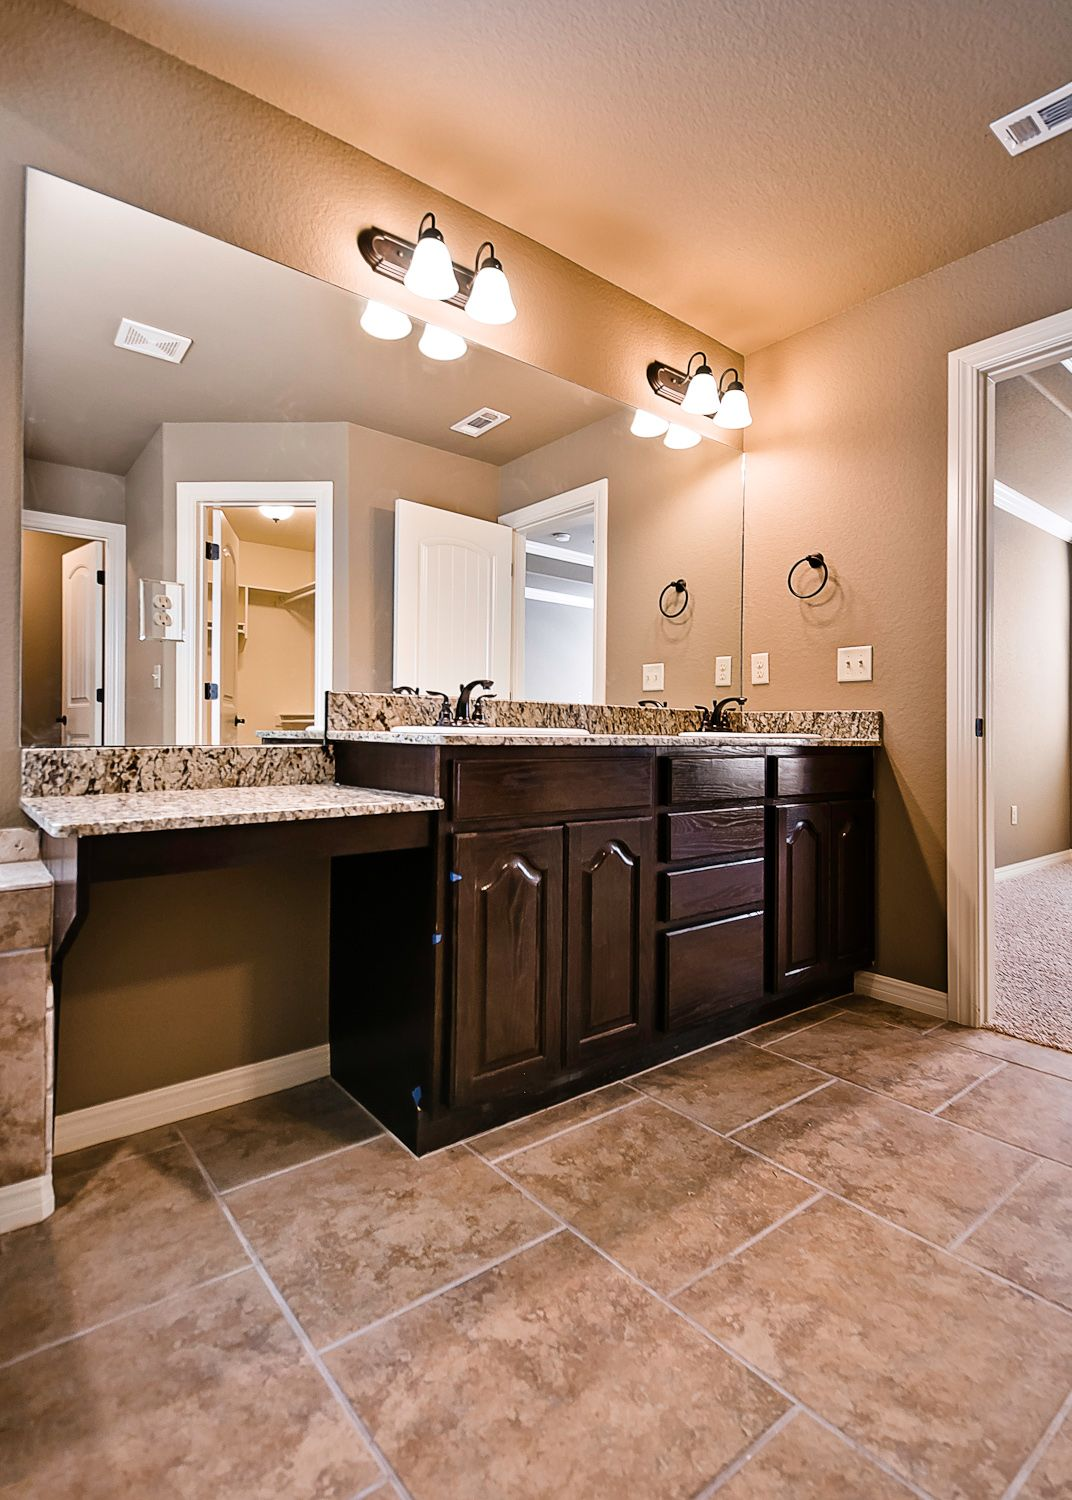 Bathroom featured in the 1536 By Riverwood Homes - Arkansas in Fayetteville, AR